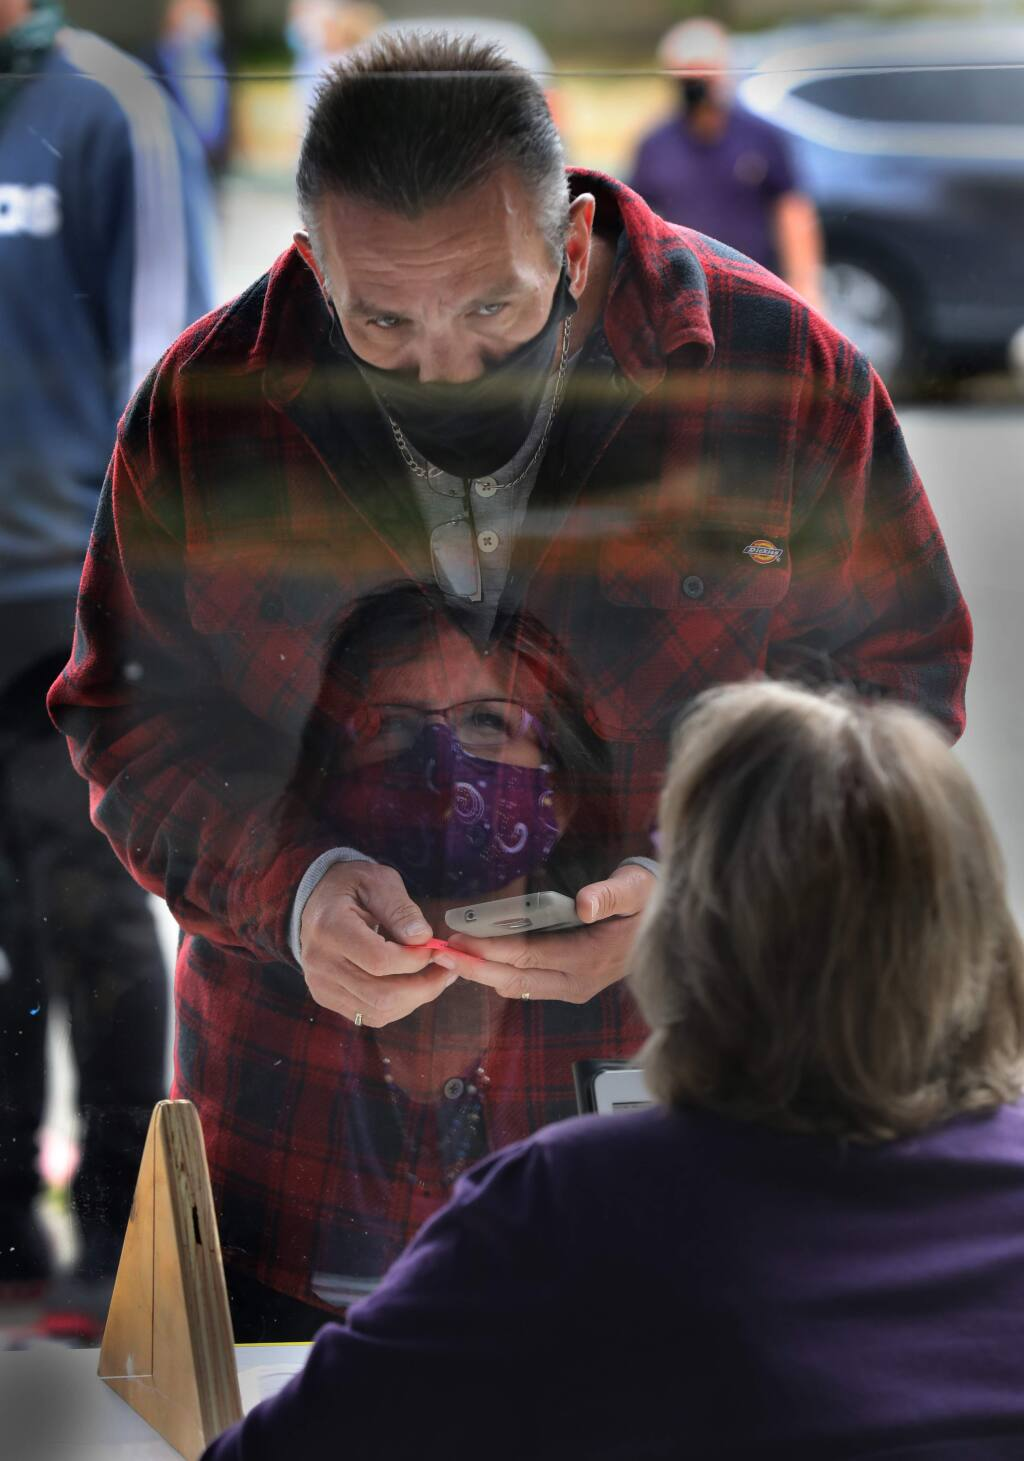 Robert Borders goes through the screening process for COVID-19 with Sonoma County Court worker Dawn P. outside the Sonoma County Superior Court in Santa Rosa, Calif., on Monday, June 1, 2020. (BETH SCHLANKER/ The Press Democrat)